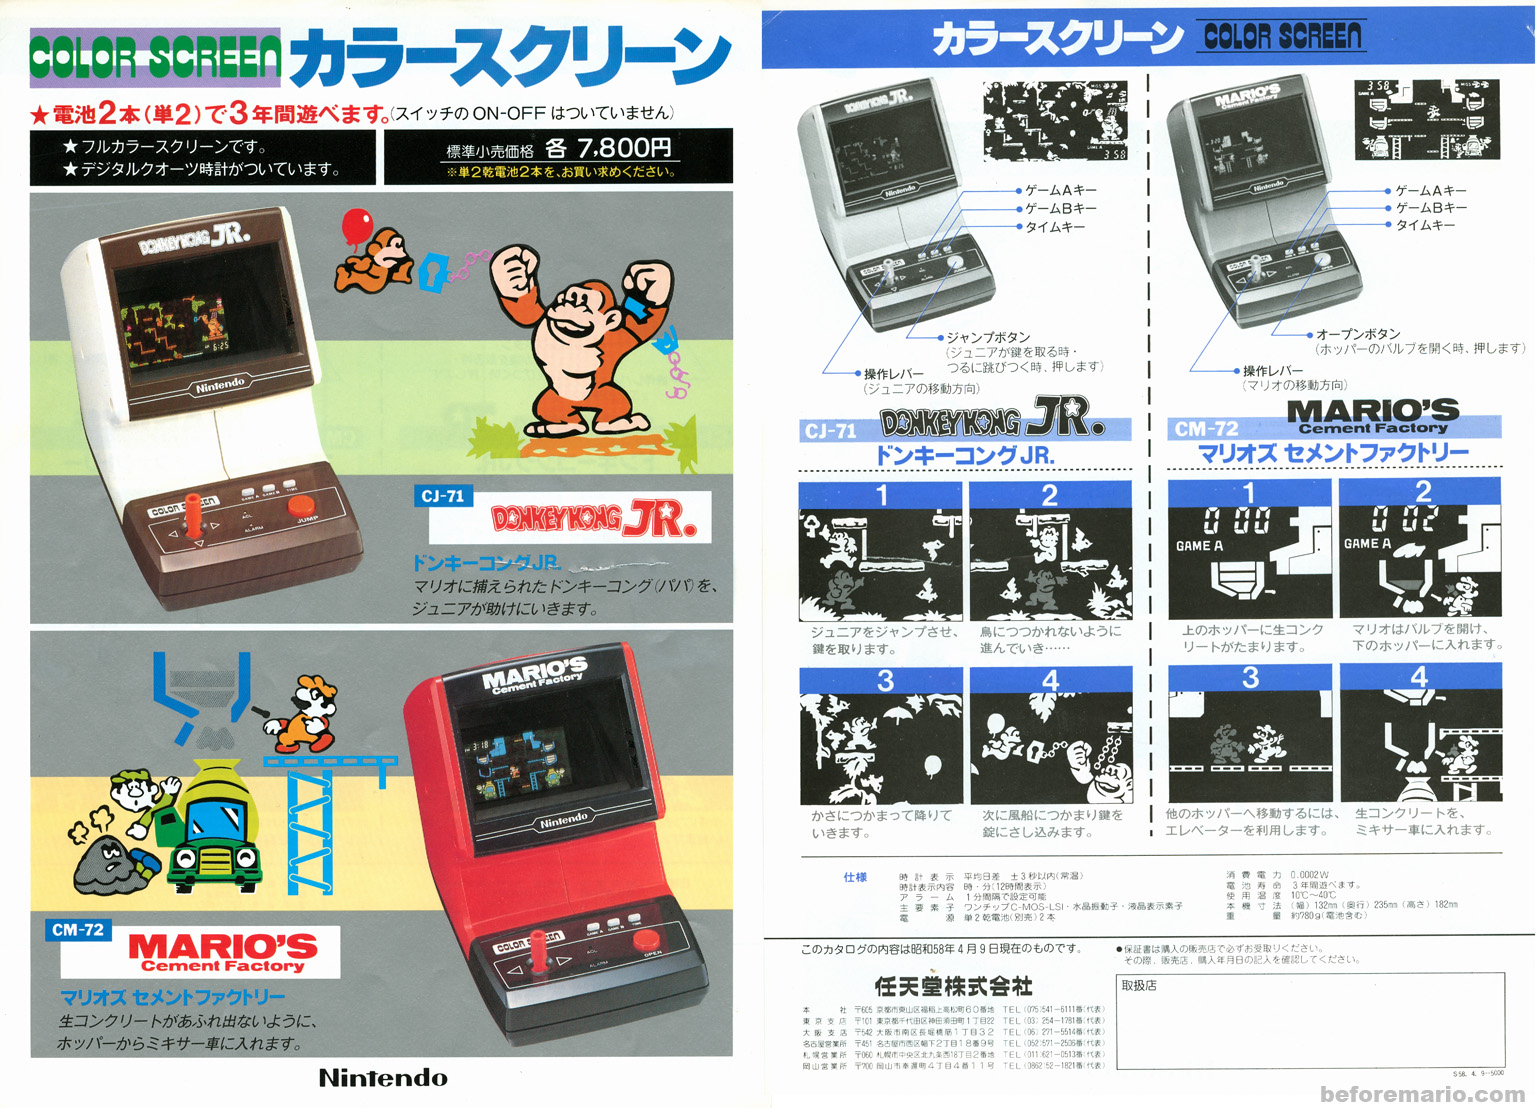 beforemario: Nintendo Color Screen (Game and Watch Table Top